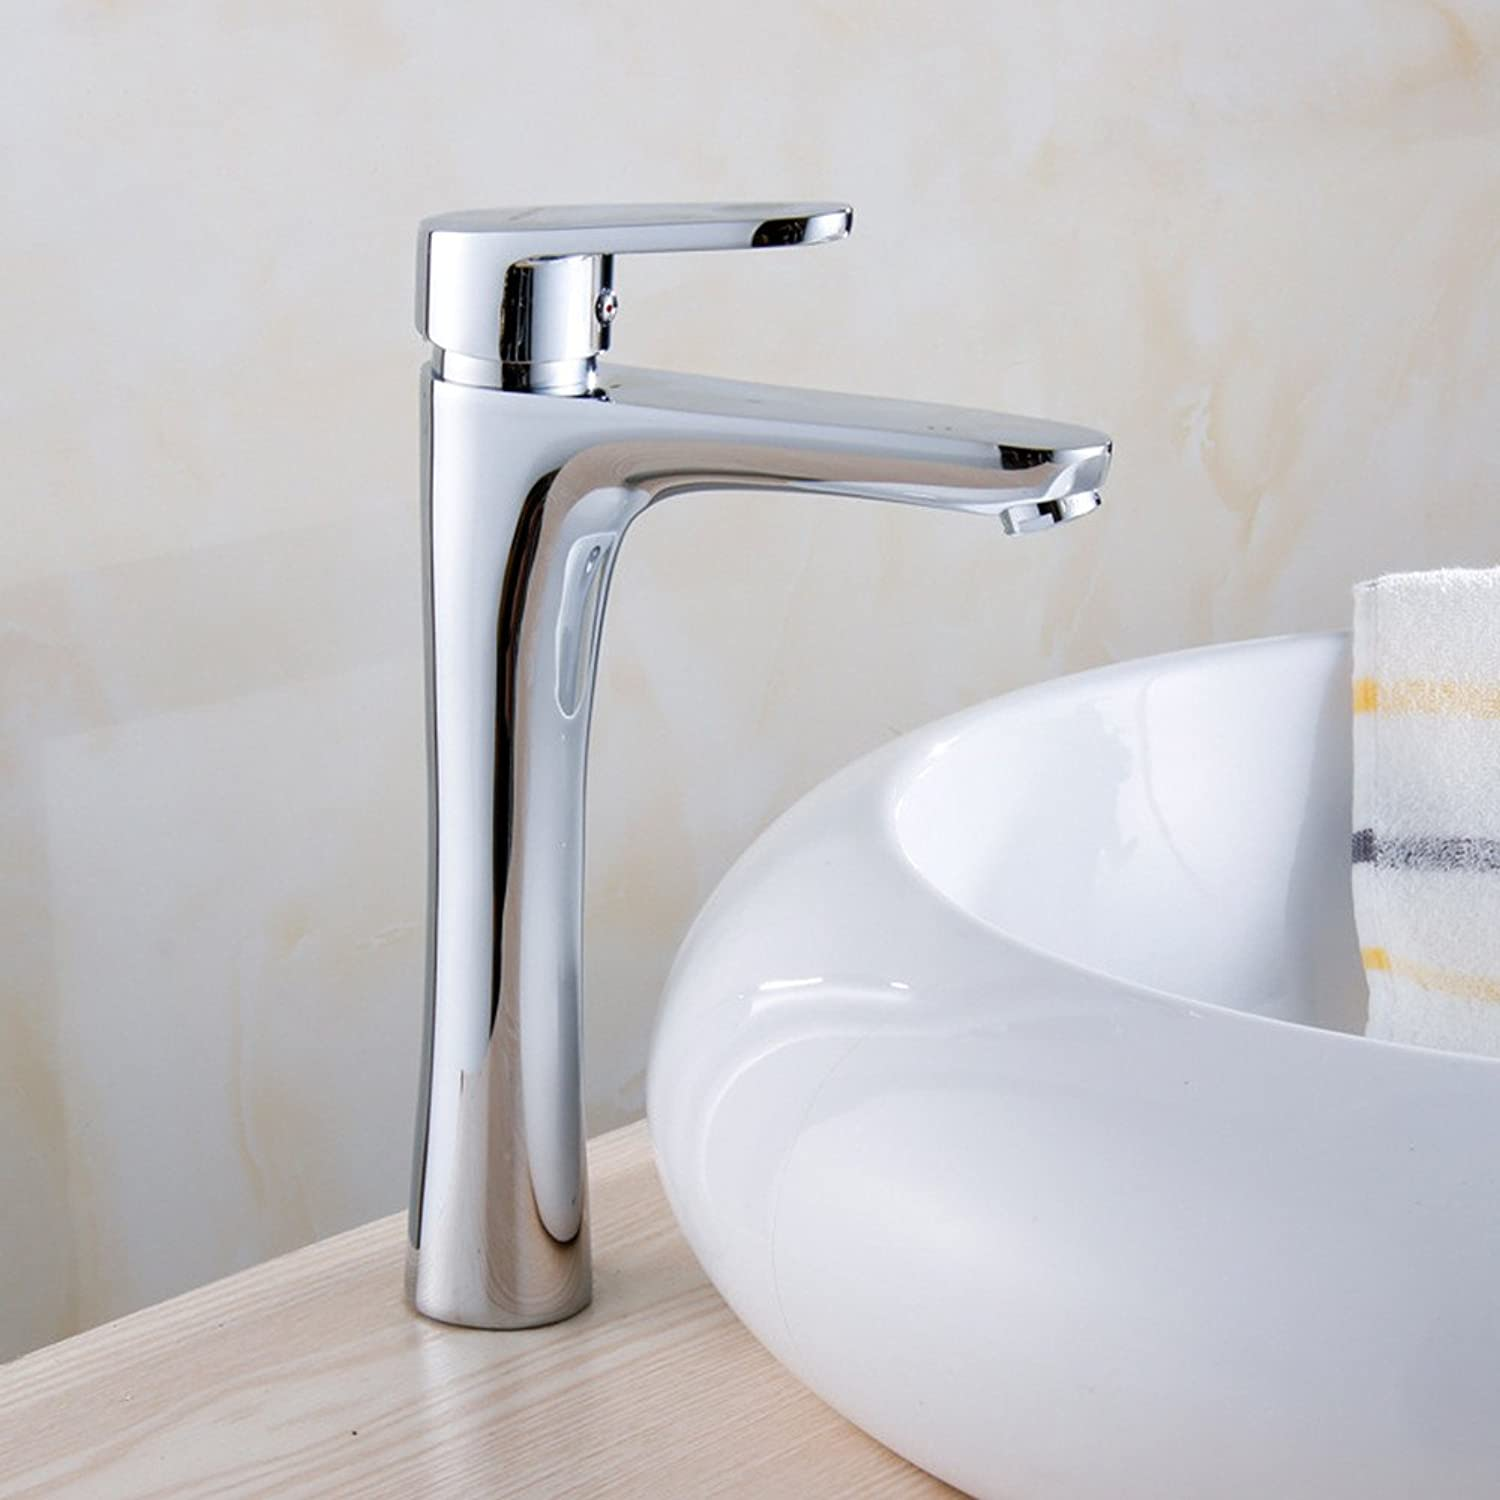 Hlluya Professional Sink Sink Sink Mixer Tap Kitchen Faucet Hot and cold water on tap basin faucet plus high-basin mixer 2677d2